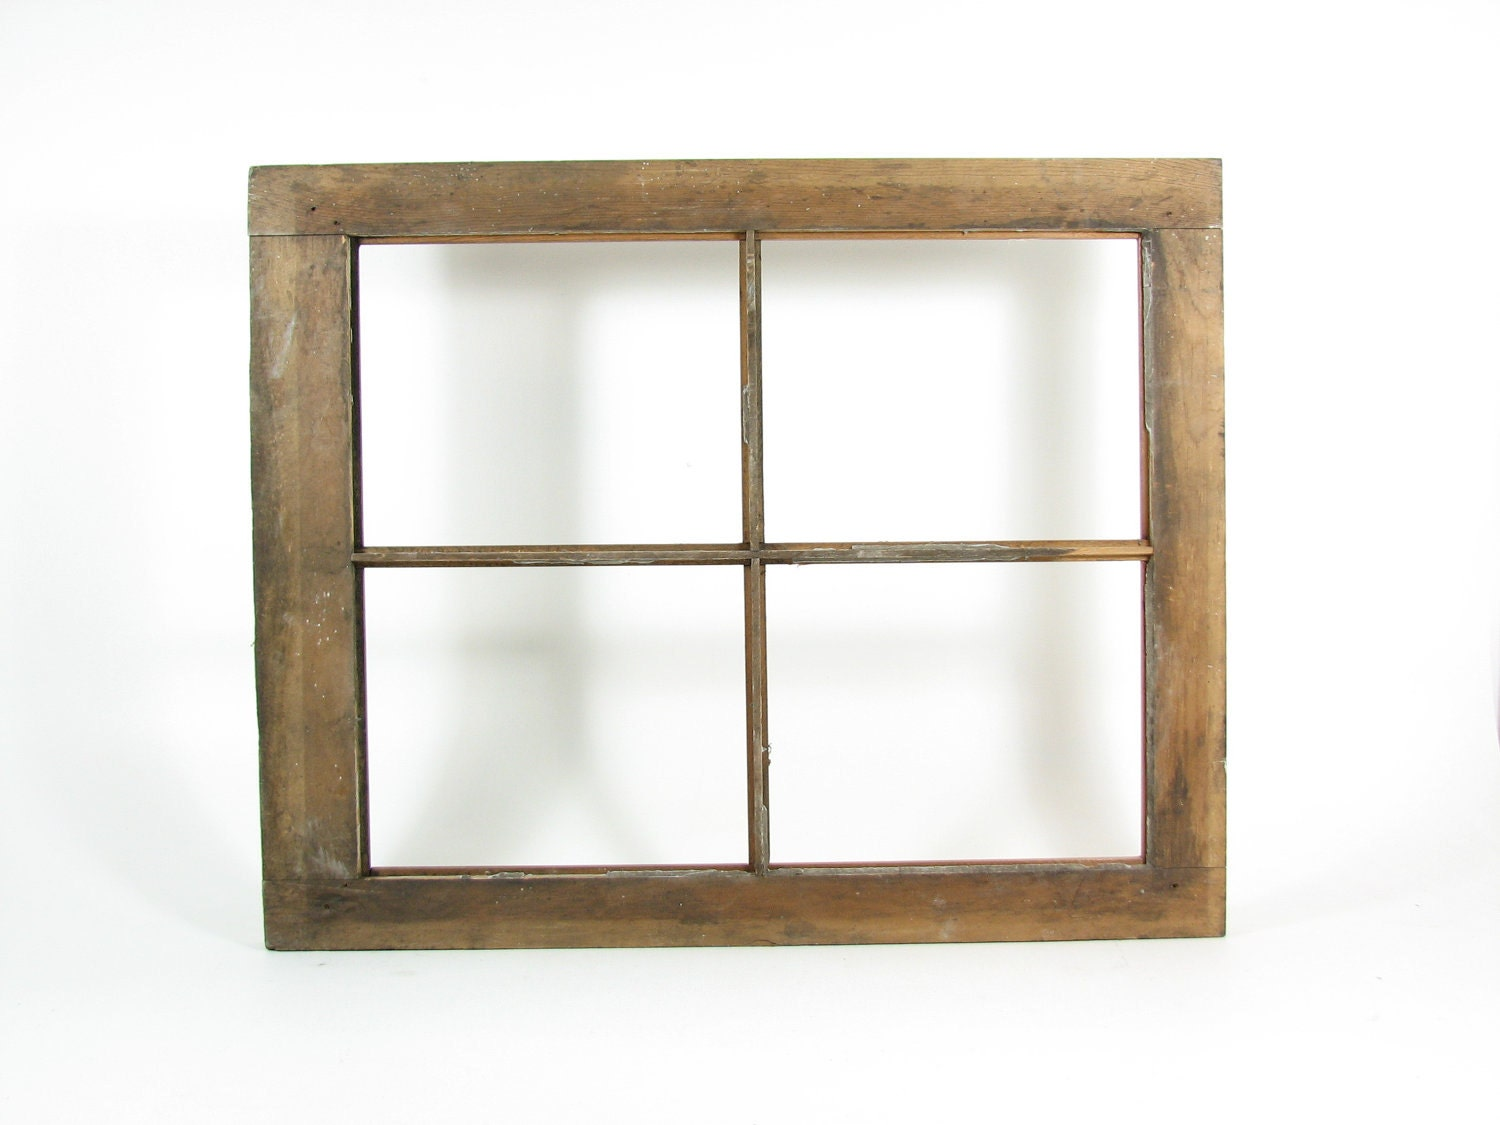 Wood Window Frames : Vintage wood window frame pane without glass weathered